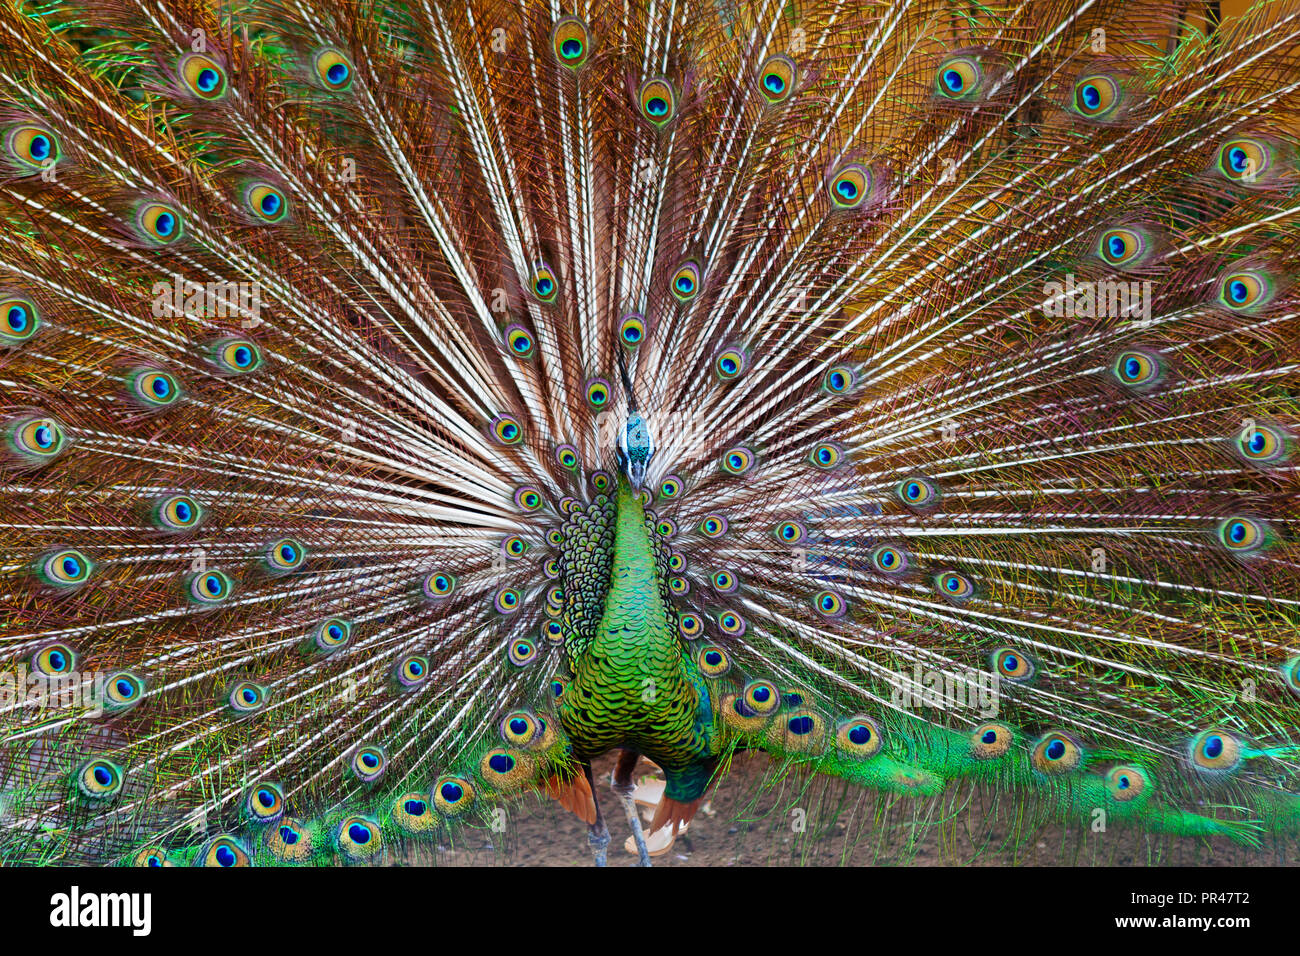 Portrait of wild male peacock with fanned colorful train. Green peafowl display tail with blue and gold iridescent feather. Bird plumage background - Stock Image